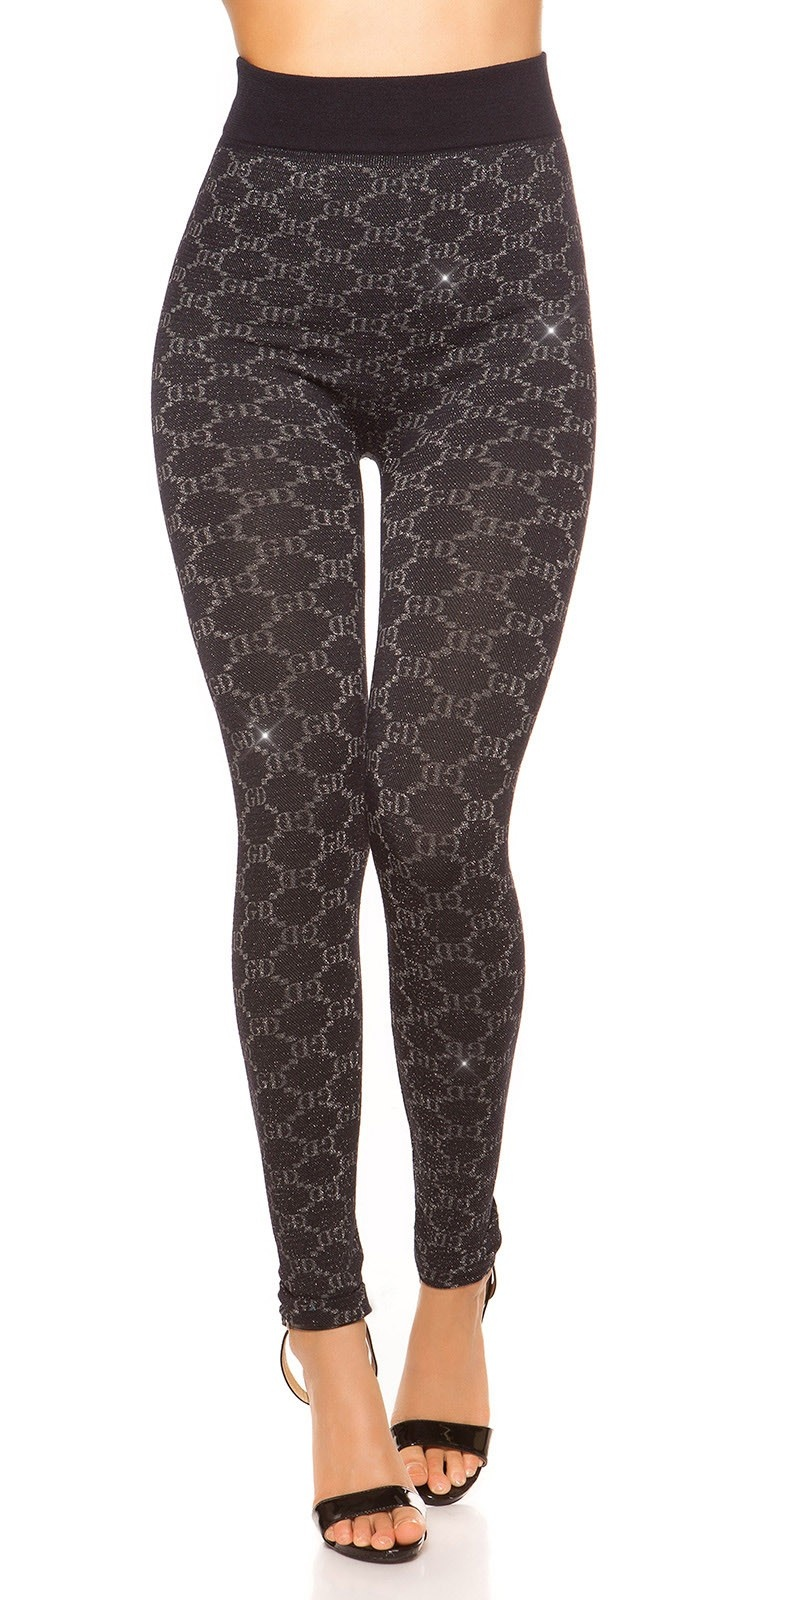 Sexy leggings with glitter threads and patterns Navy